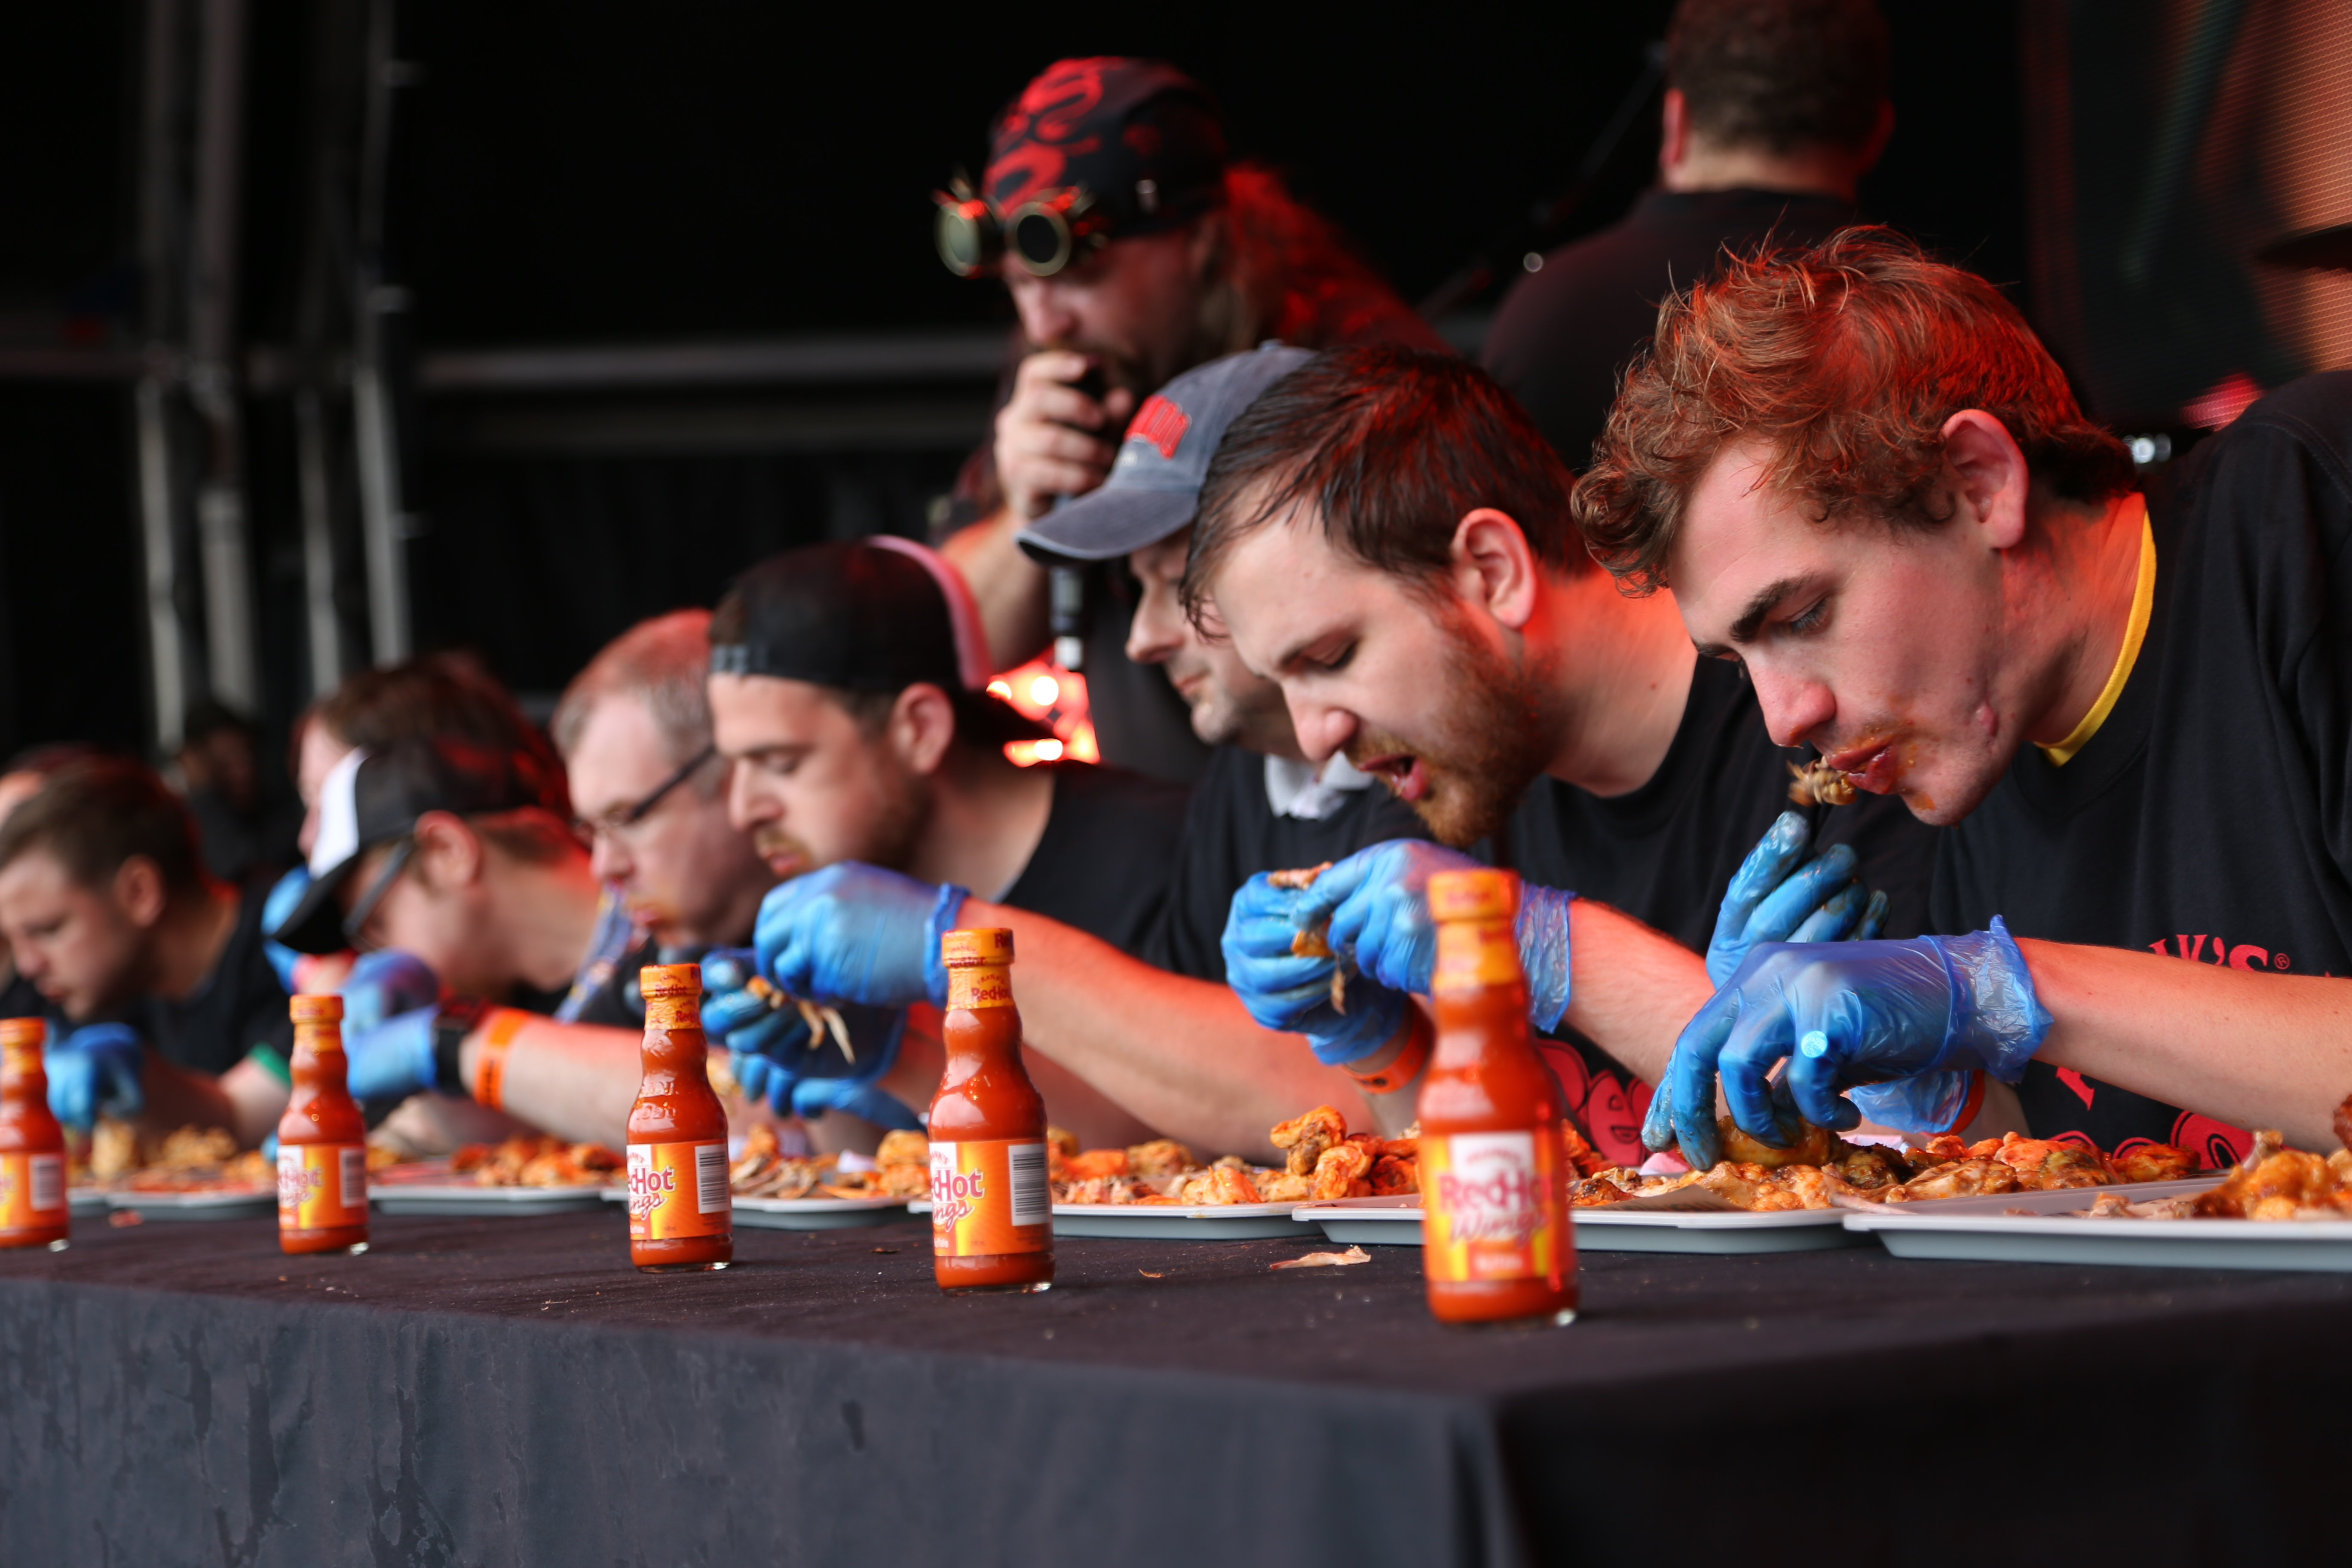 Frank's Red Hot Wings competition